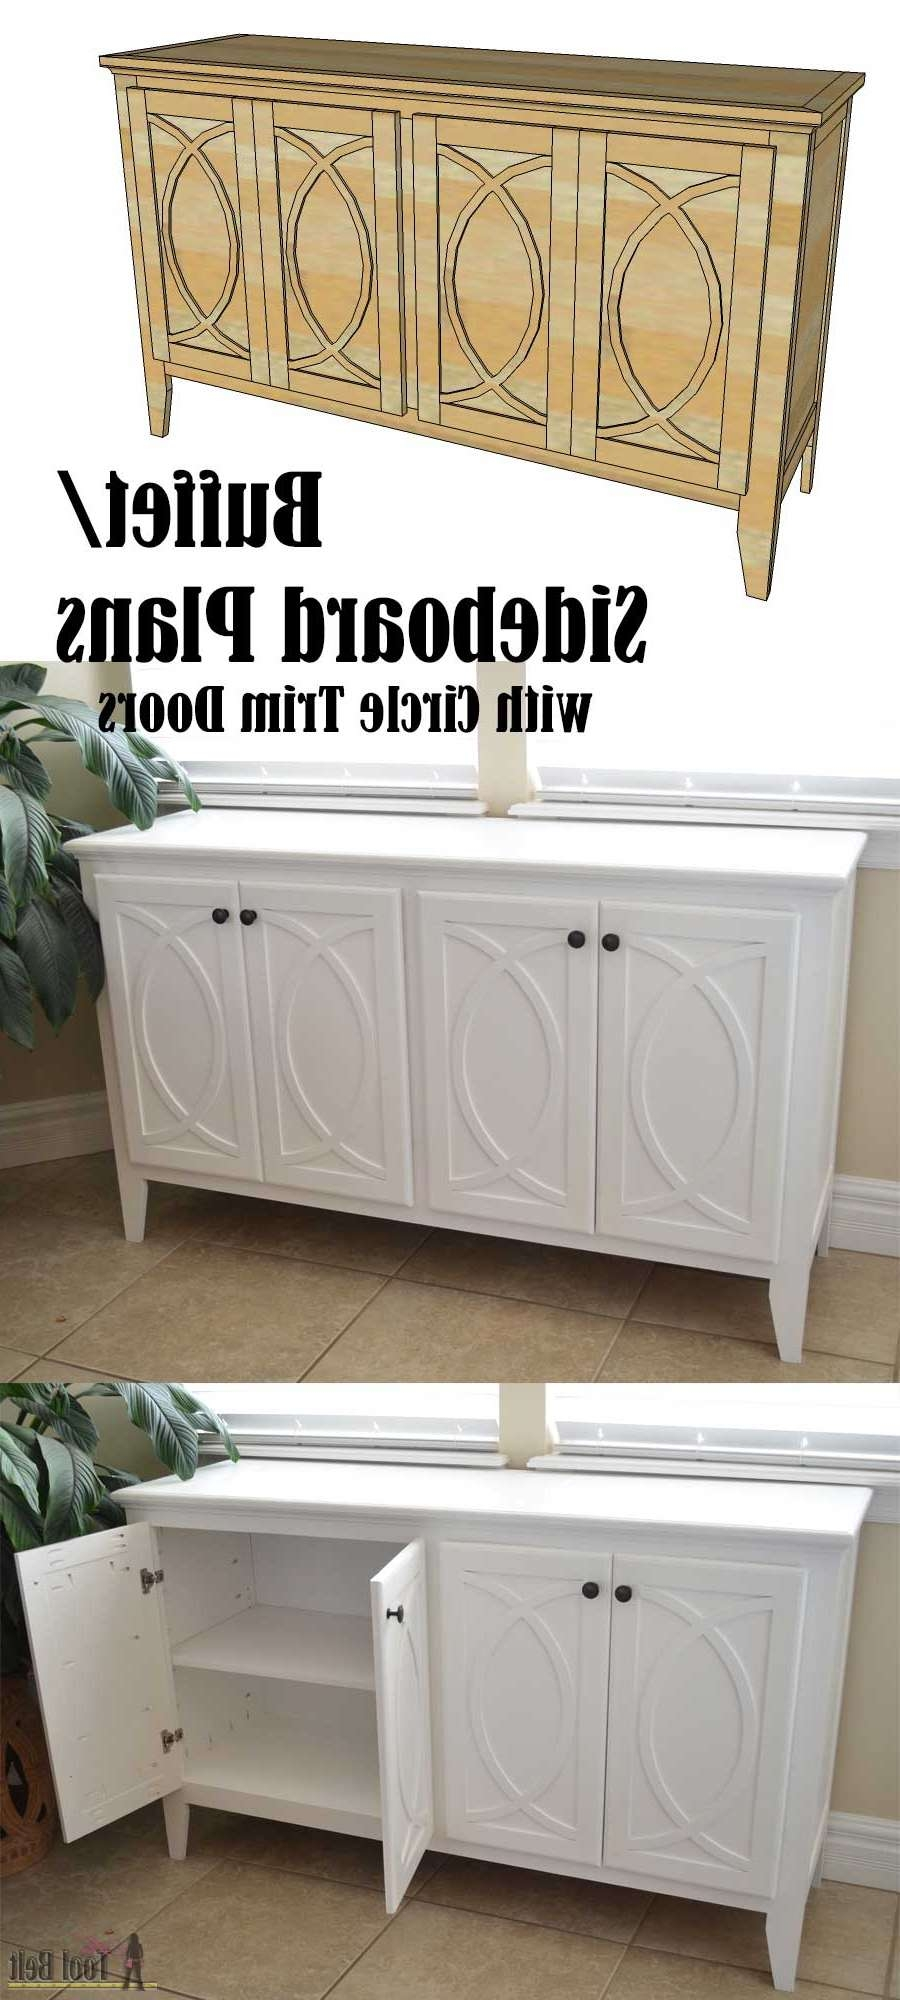 Diy Buffet Sideboard With Circle Trim Doors – Her Tool Belt Within Diy Sideboards (View 15 of 20)